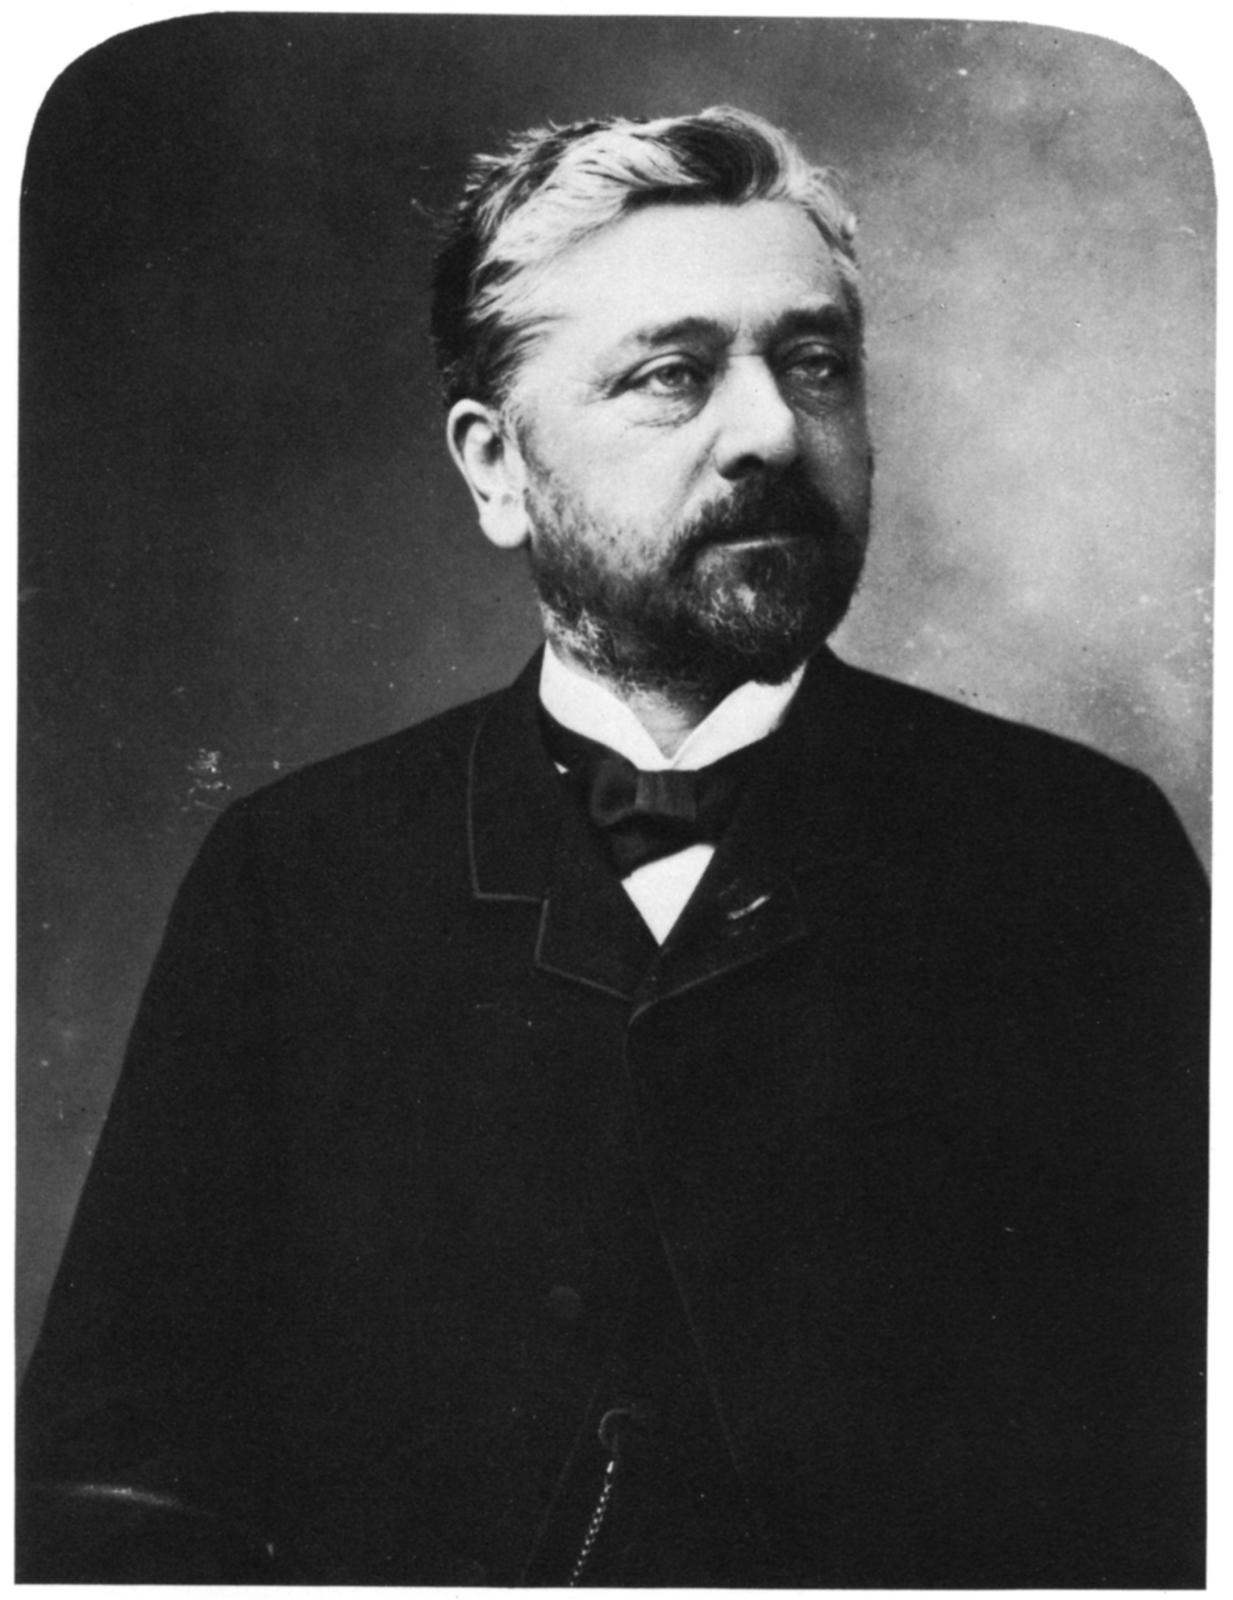 Gustave Eiffel en 1888 (photo par Nadar)